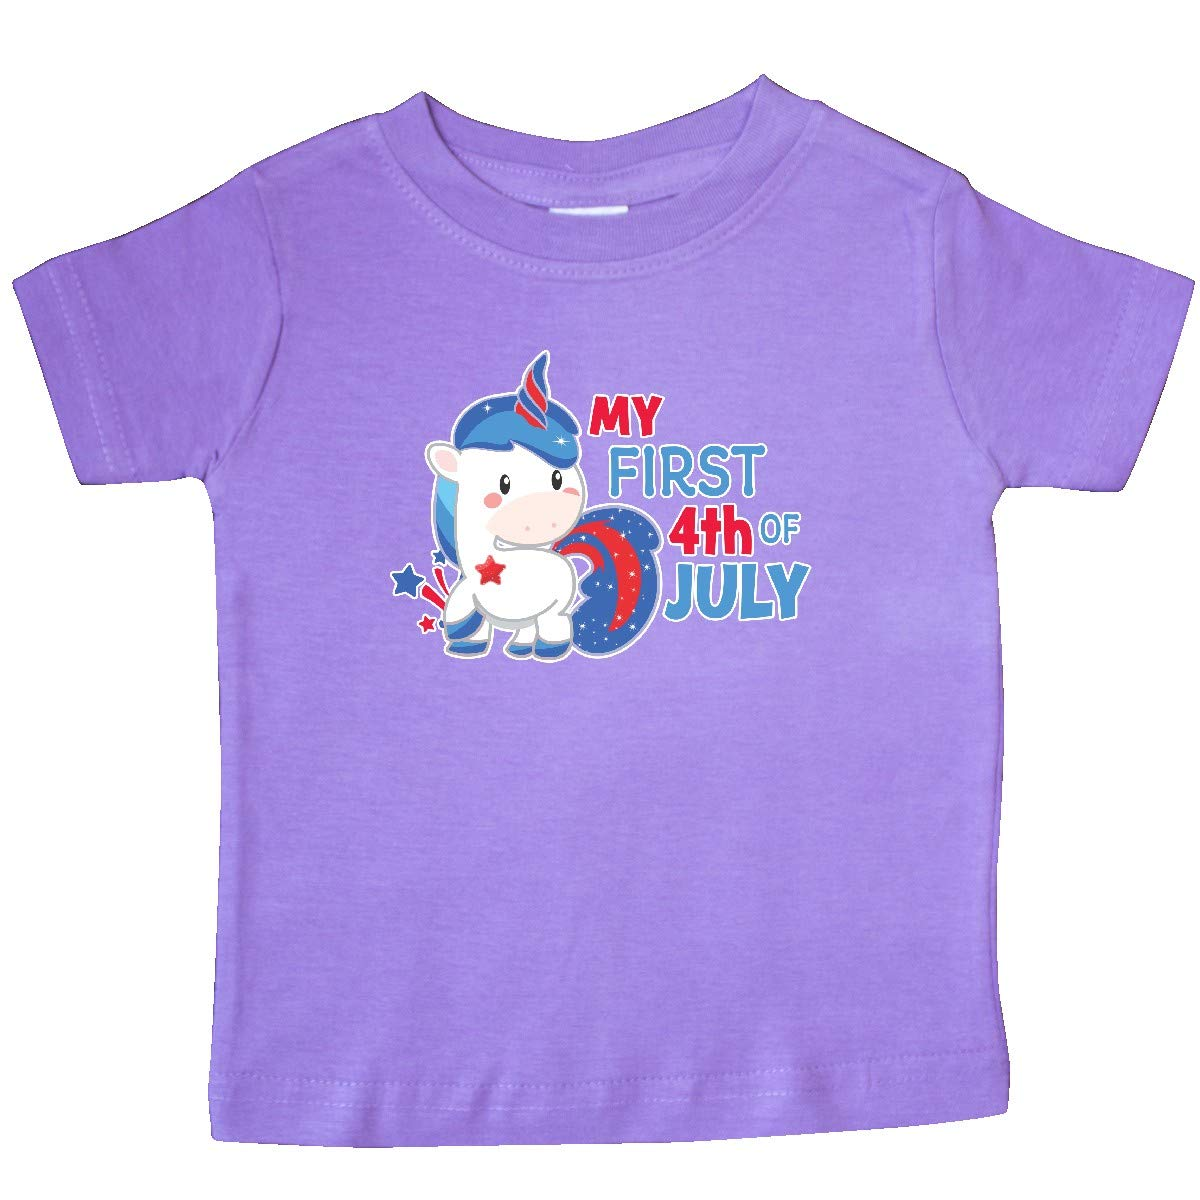 inktastic My First 4th of July with Unicorn Baby T-Shirt